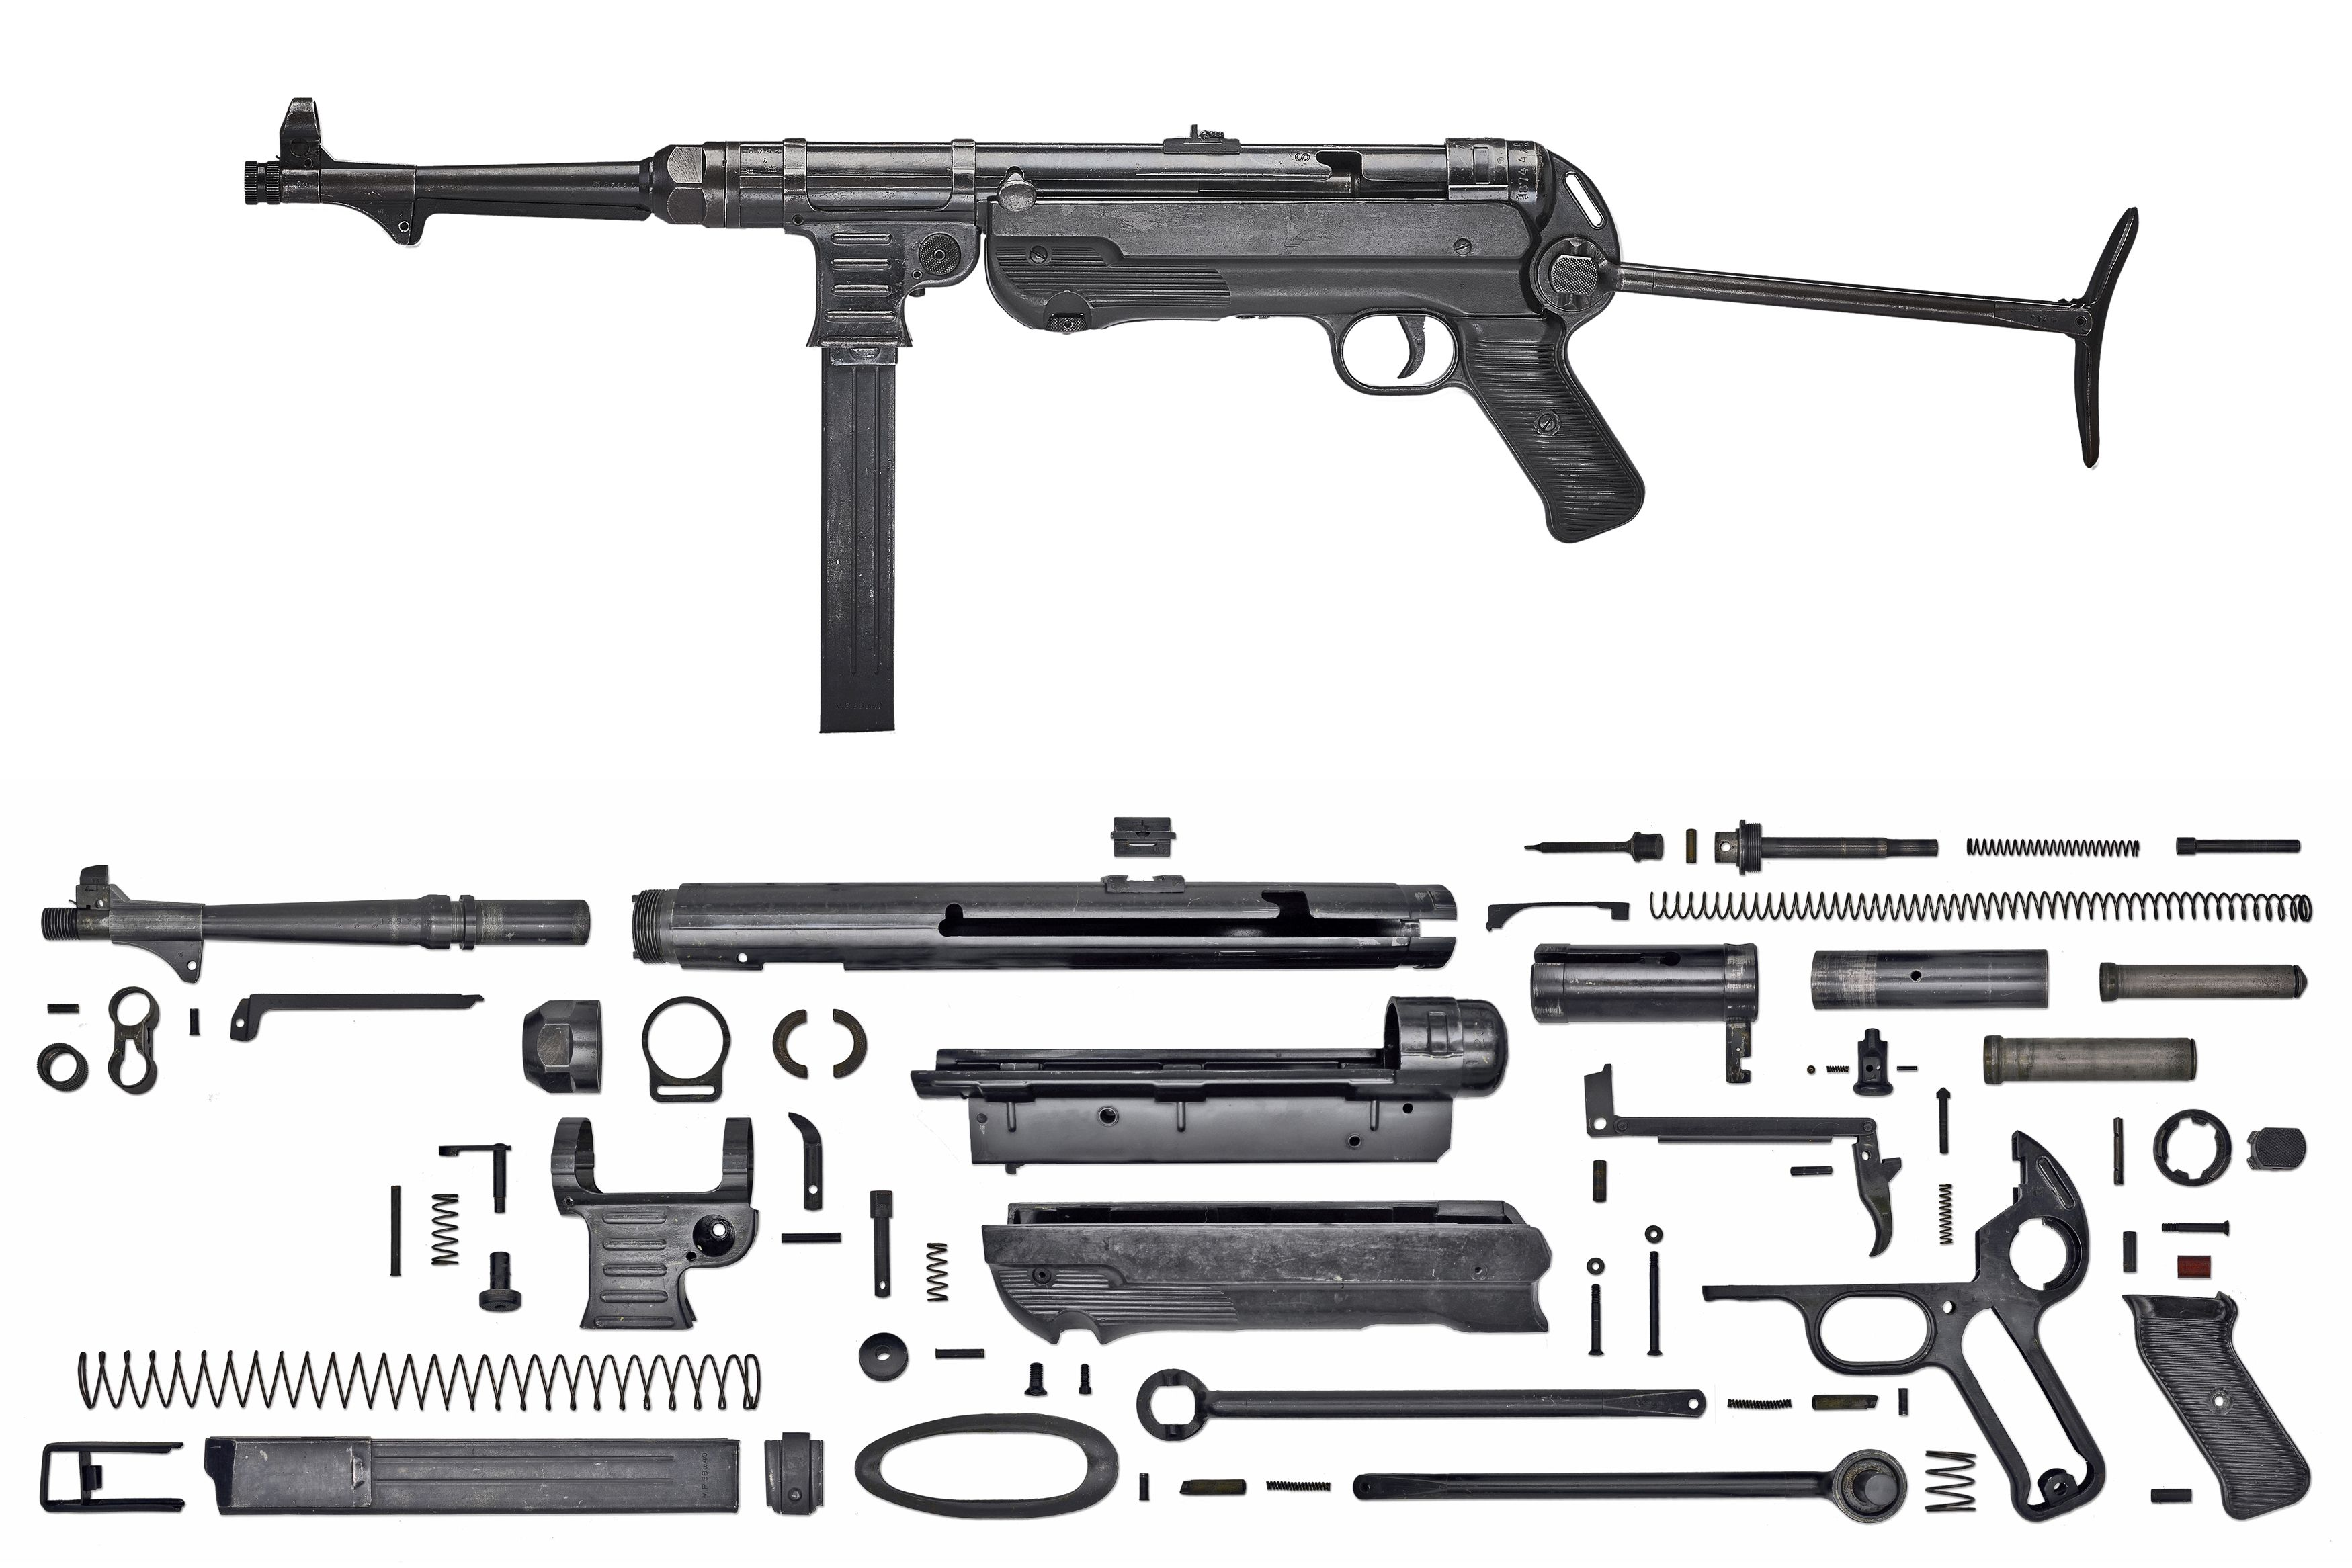 Anatomy-SMG-German-MP40.jpg (3500×2334) Speed up and simplify the ...